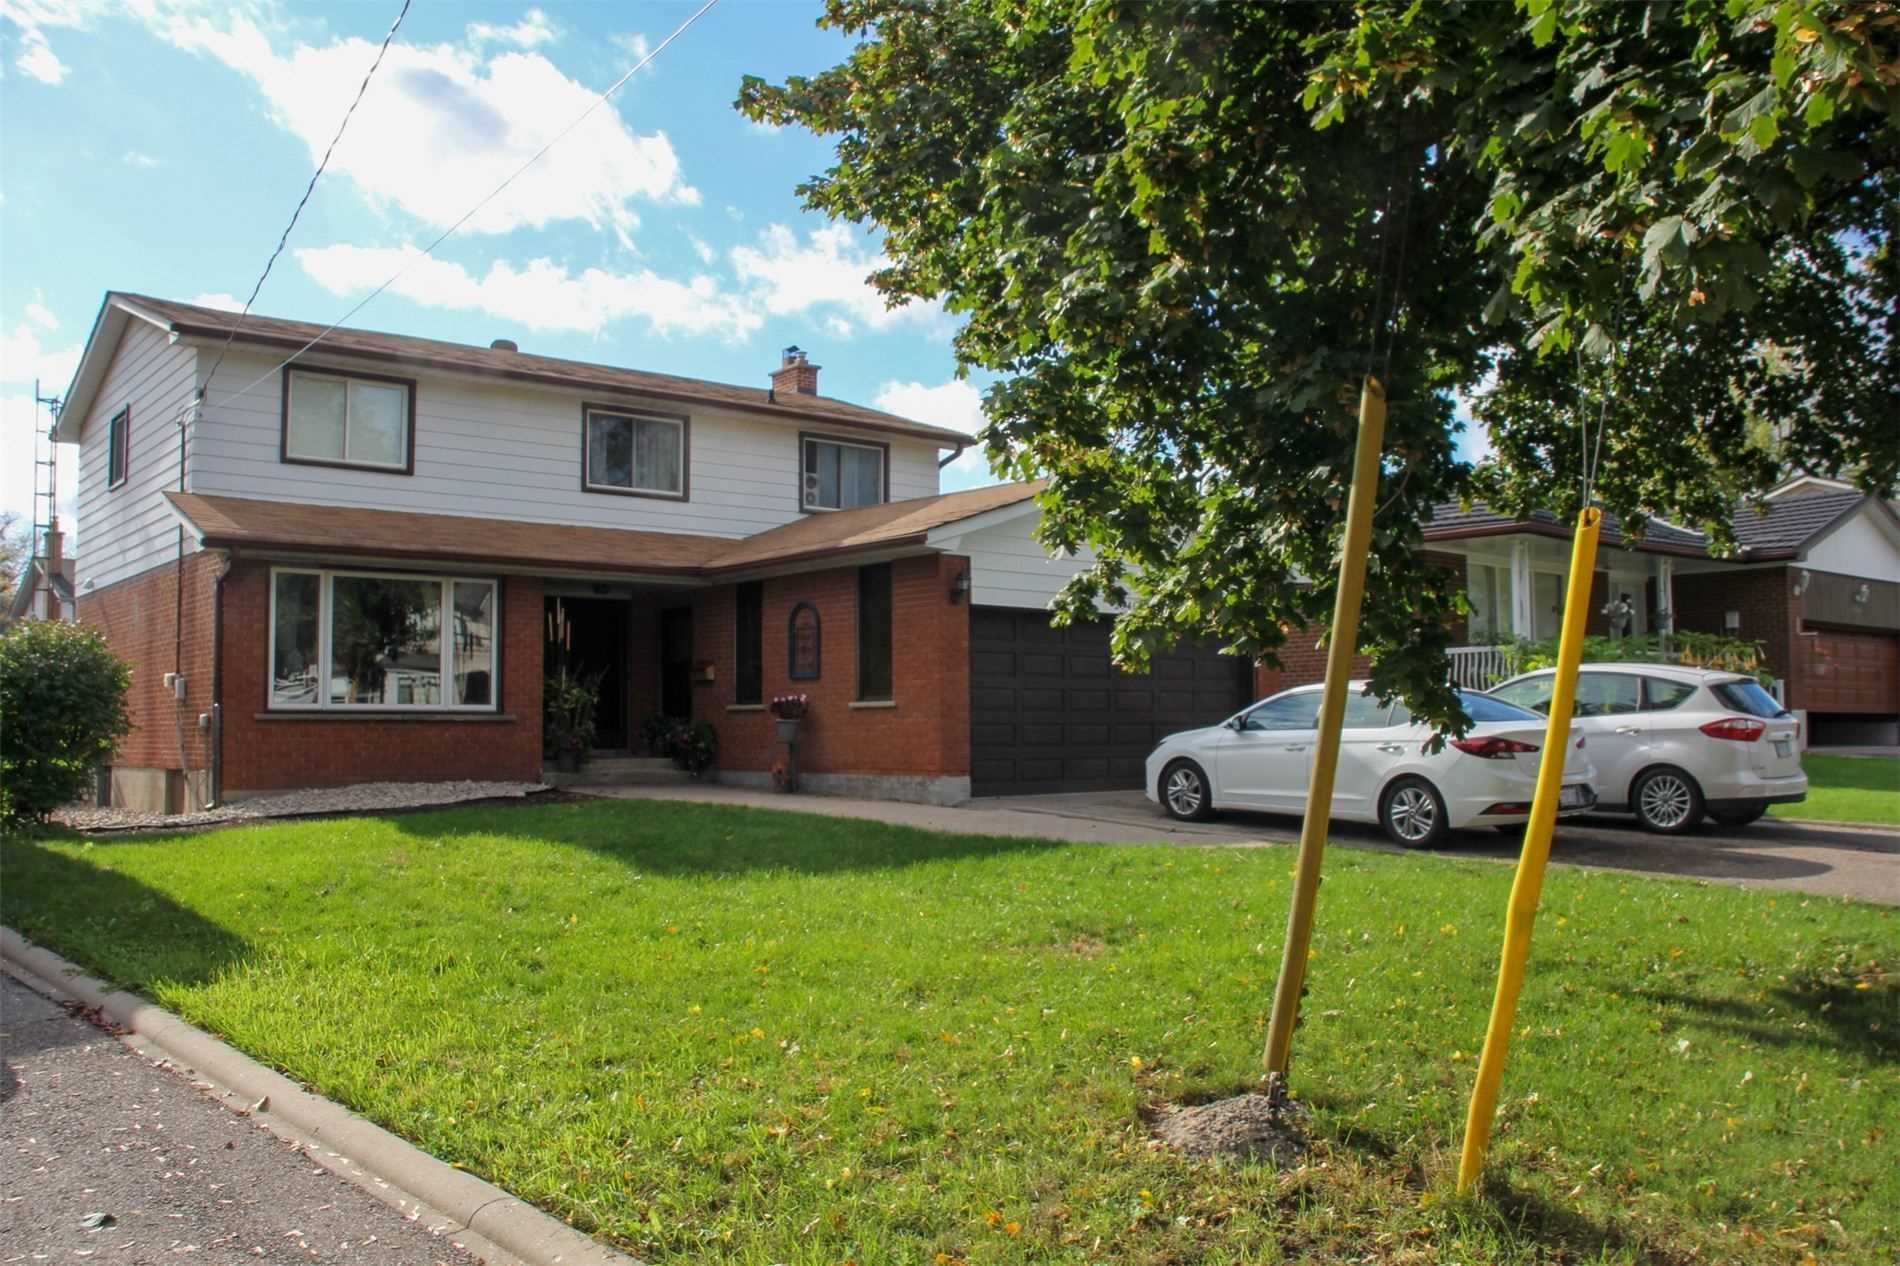 2540 Cliff Rd, Mississauga, ON L5A2P4 - MLS#: W5405271